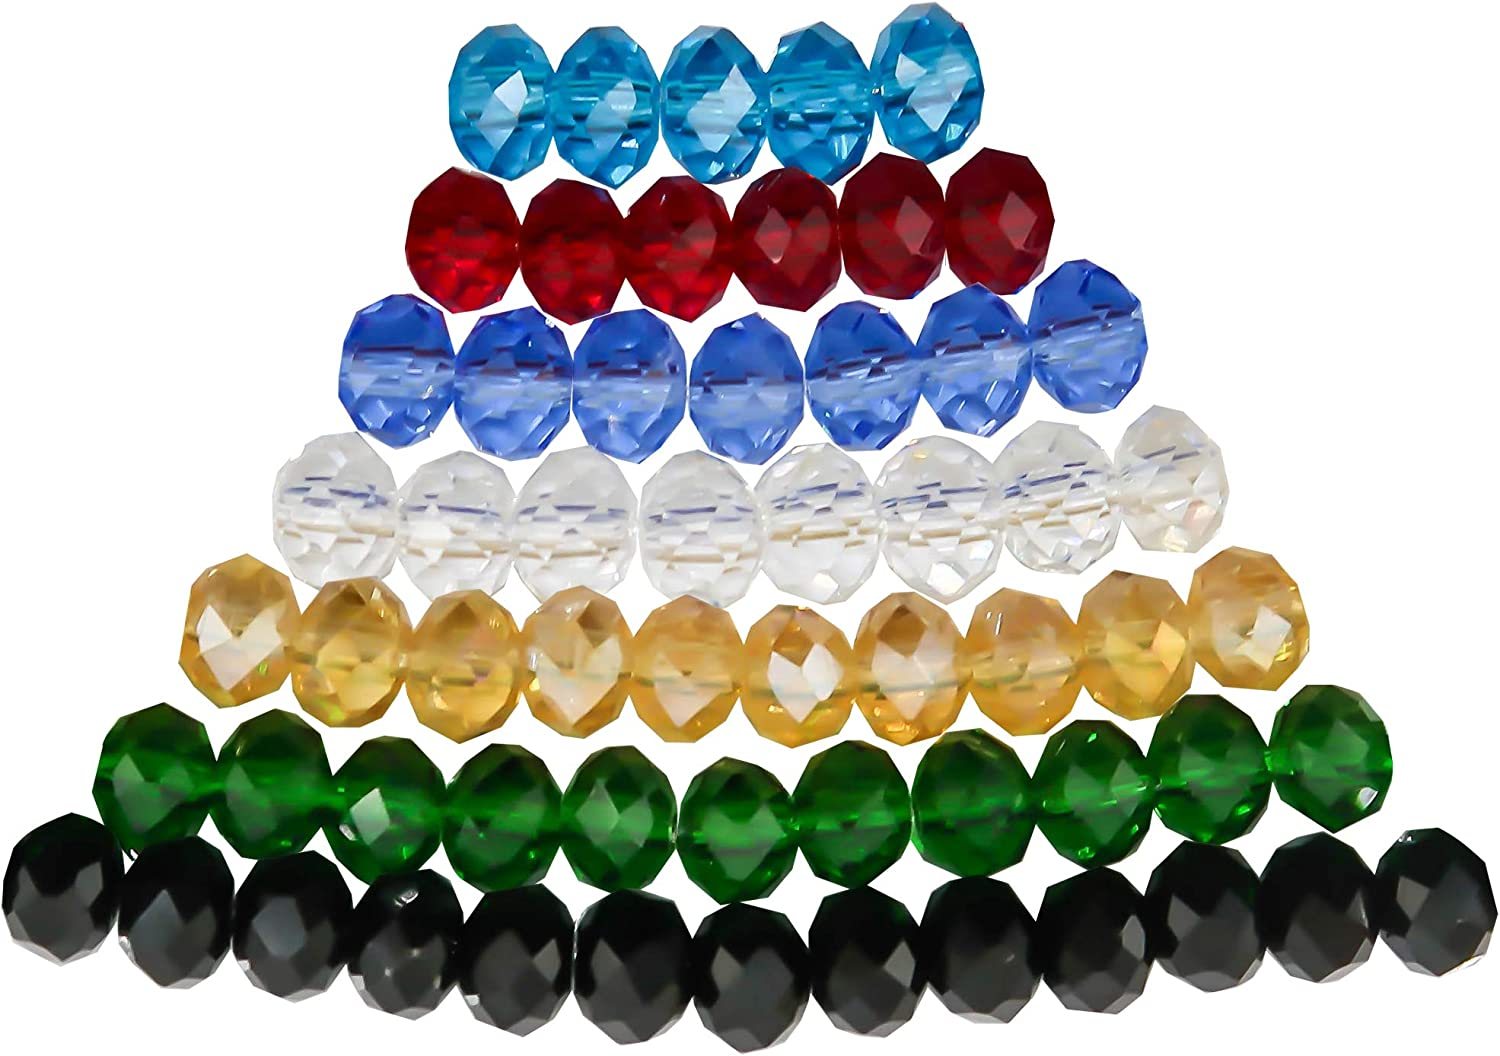 TOAOB 560pcs Mixed Colors 6mm Crystal Glass Faceted Beads for Jewellery Making